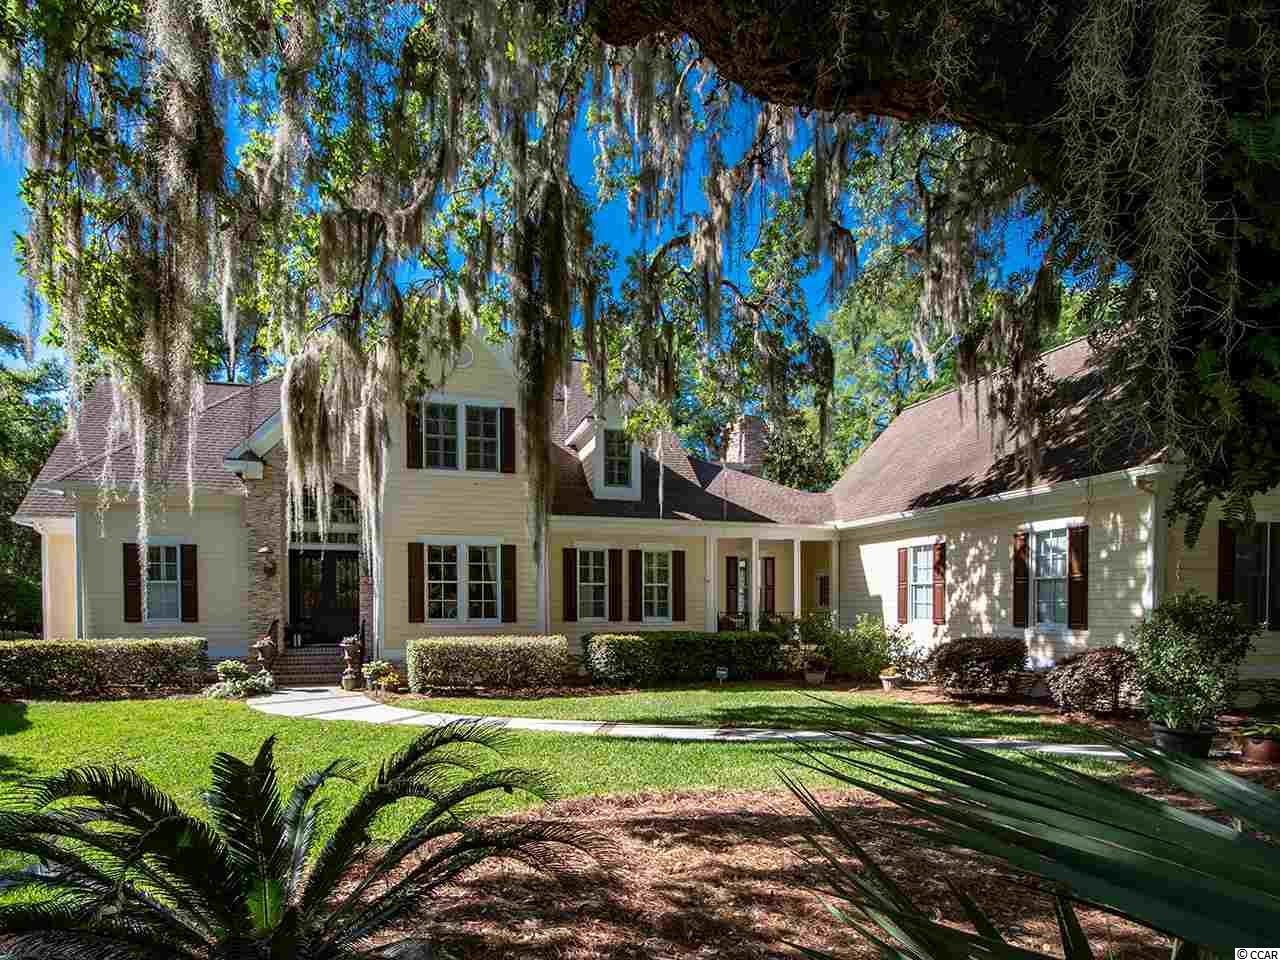 This lavish estate home was custom designed to accentuate the majestic beauty of it's surroundings in this exclusive section of Willbrook Plantation.  As you drive past the brick column entrance you are immediately struck by the centuries old Oak Trees that frame this property's almost 2 acres of manicured and natural setting.  The home, built by the current owners, was thoughtfully planned out for livability, comfort, Lowcountry style and high quality craftsmanship.  There are 4 bedrooms, 5 full and 1 half bath with the Master BR on the first floor.  Upon entering the residence you will be drawn to the wall of windows' that overlooks the back yard and navigable creek.  There are additional rooms that may also be used a guest bedrooms including a large Media Room, complete with Oversized screen, projection and surround sound, and a room over the garage currently being used as a game room with vaulted ceiling beautiful woodworking and a full bath.   There is a private boat ramp only available to the Oak Pointe property owners of this area, a lovely foot bridge leading to a fixed and floating dock and access to the Waccamaw River/ICW making this a select and unique property within the confines of Willbrook.  The community enjoys the safety of 24-hour gated security, the pleasure of a community pool, the convenience of an on site golf course and private beach access through the Litchfield by the Sea beach resort.  The community is a day trip away from Charleston, 30 minutes to the Myrtle Beach International airport, numerous attractions and Live Music venues or a short ride away from the Murrells Inlet Marshwalk restaurants and Watersports. Drive your golf cart to the beach.  This property has it all, location, convenience, majestic and serene living environment, great floor plan, high quality craftmanship, access to the River and the Beach in a private gated community.  Call today to tour this amazing home.